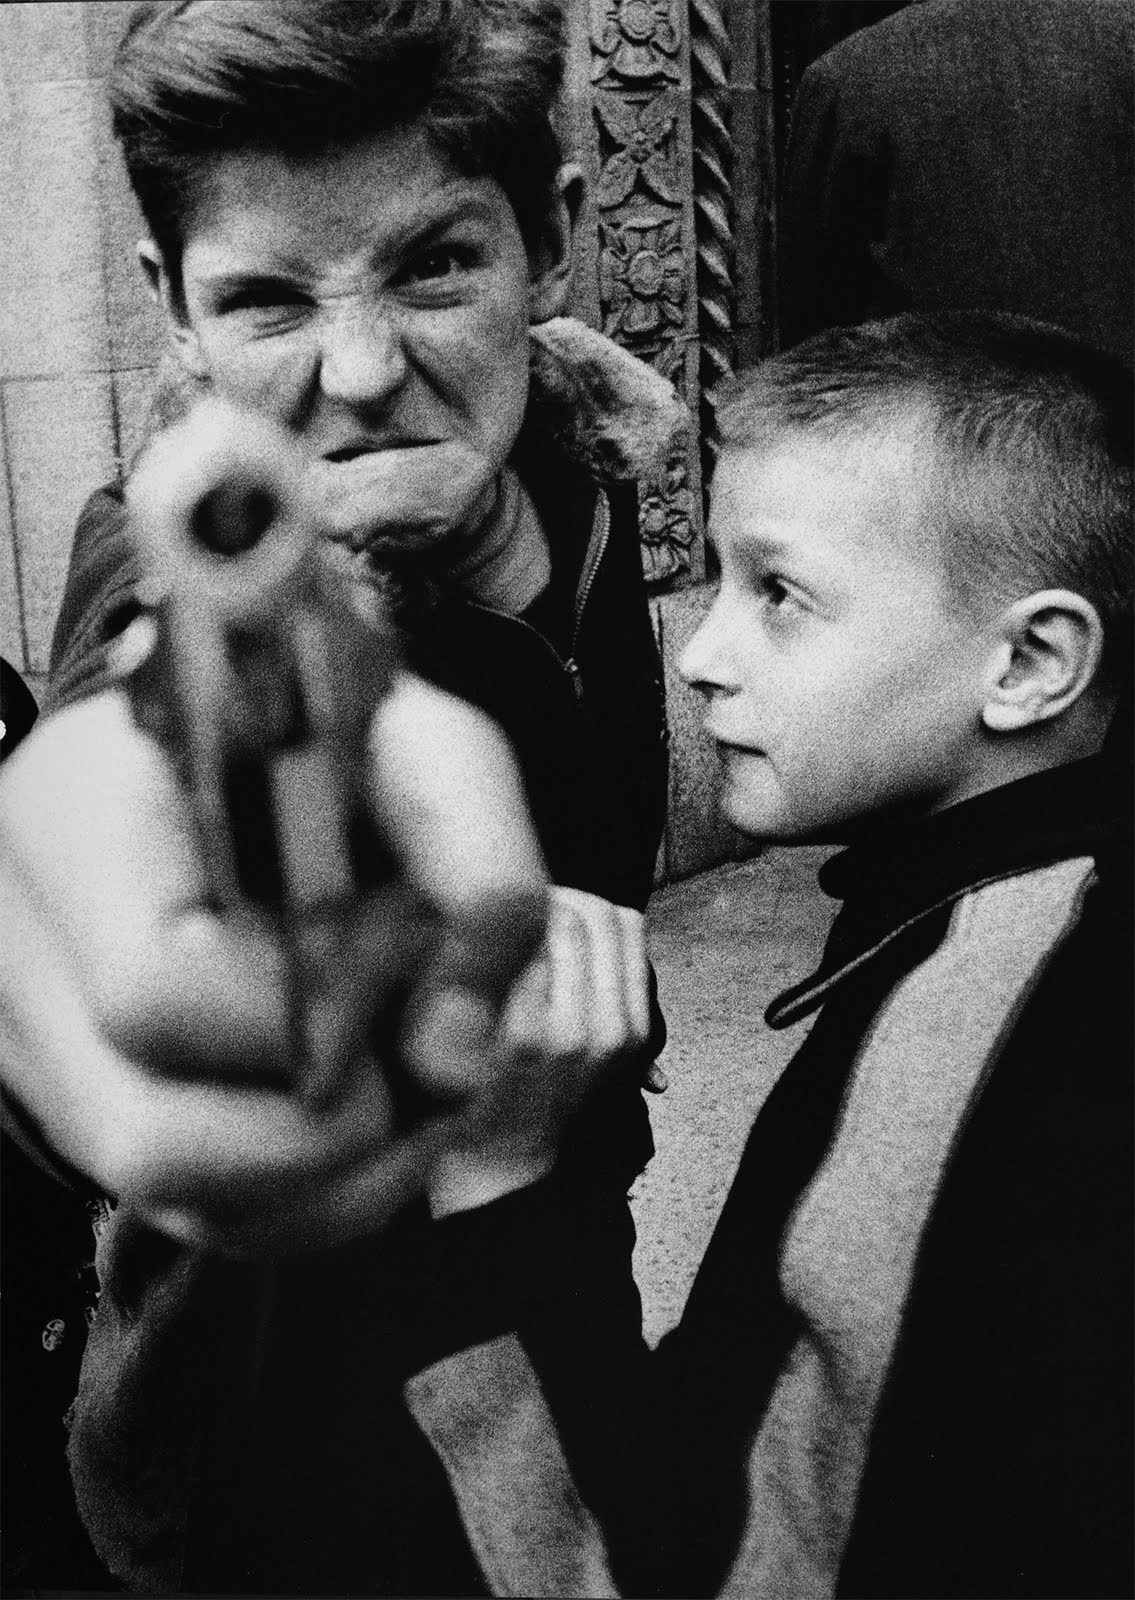 William Klein: Gun 1 (1955)